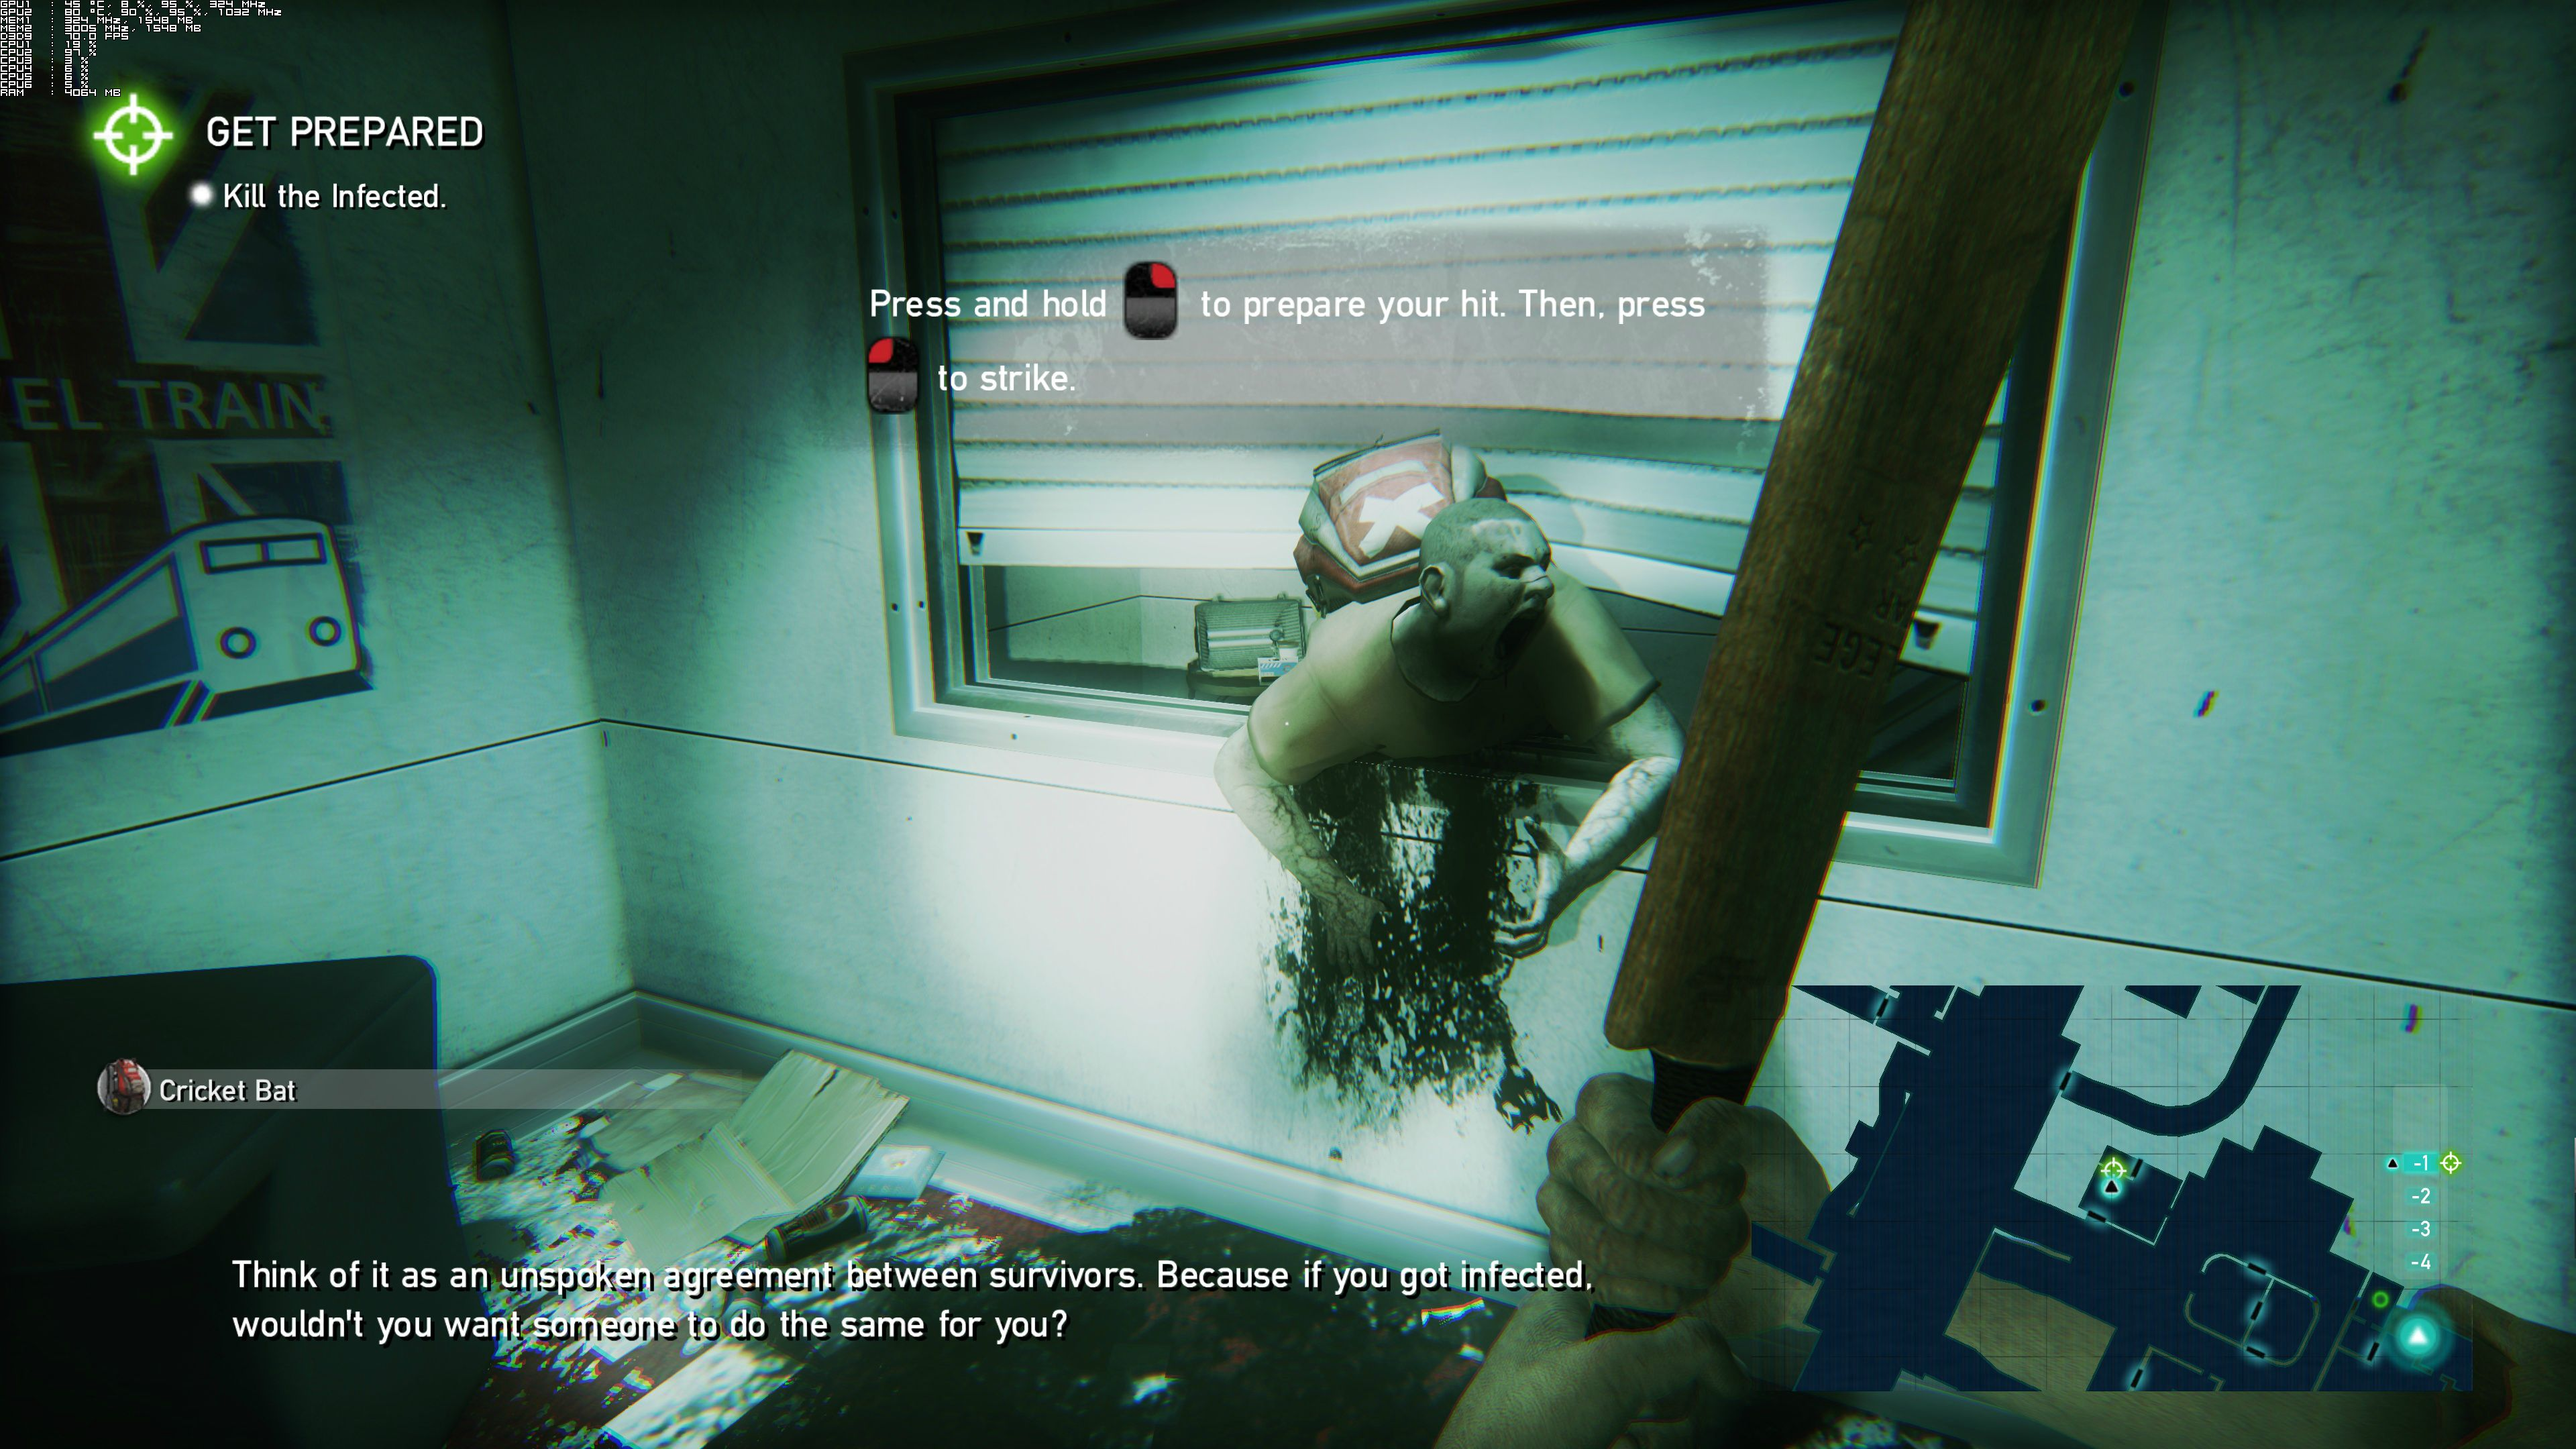 New 4k Screenshots Show How Zombi Looks With Remastered Visuals On Pc